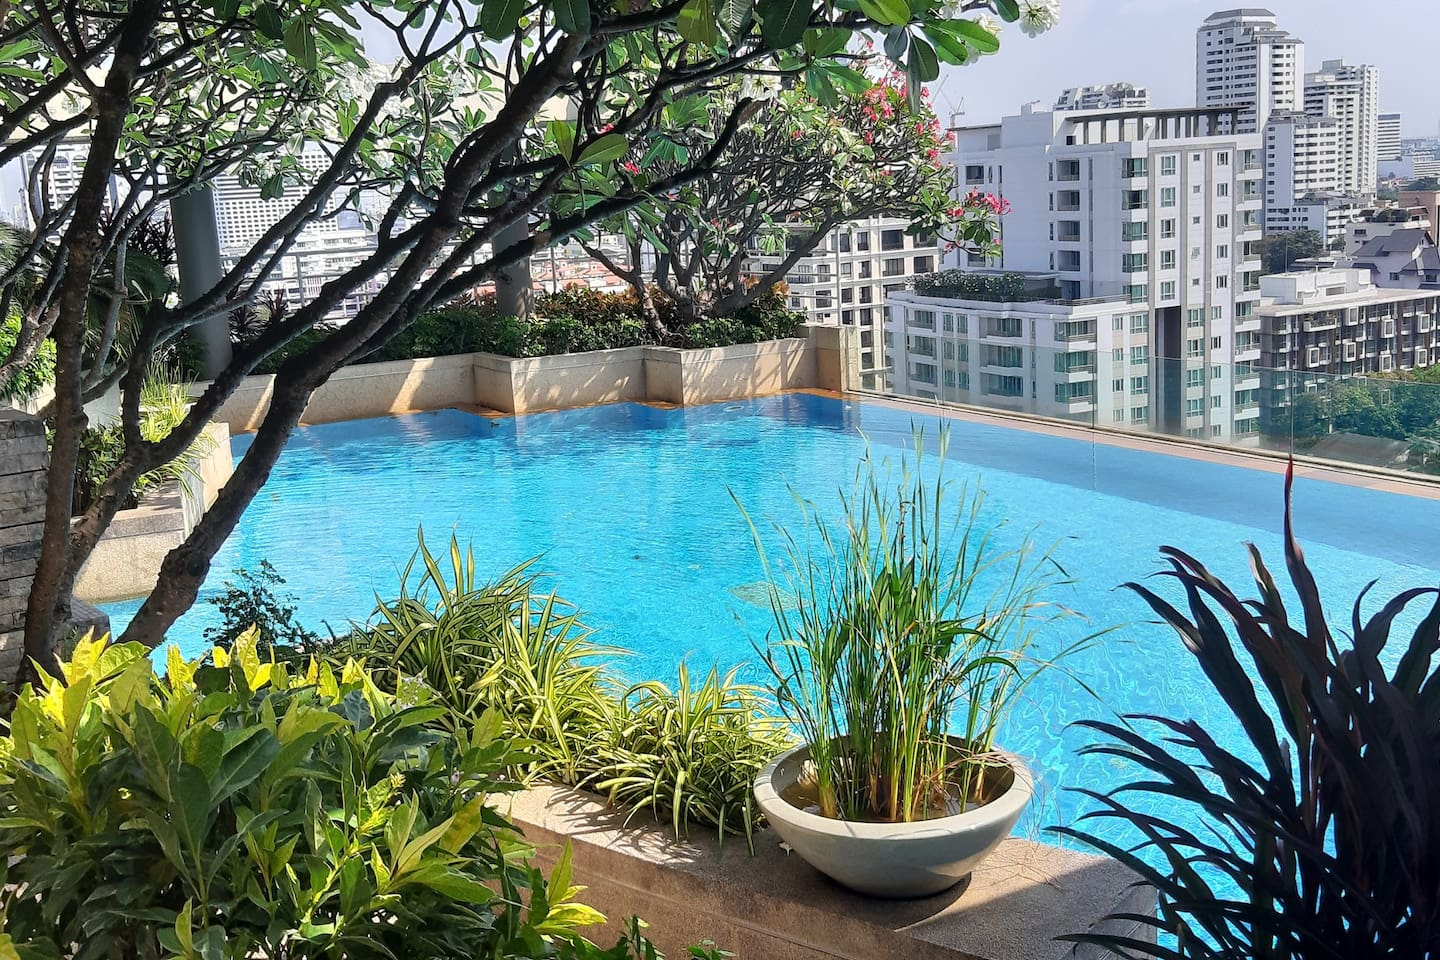 Rooftop swimming pool with a nice view